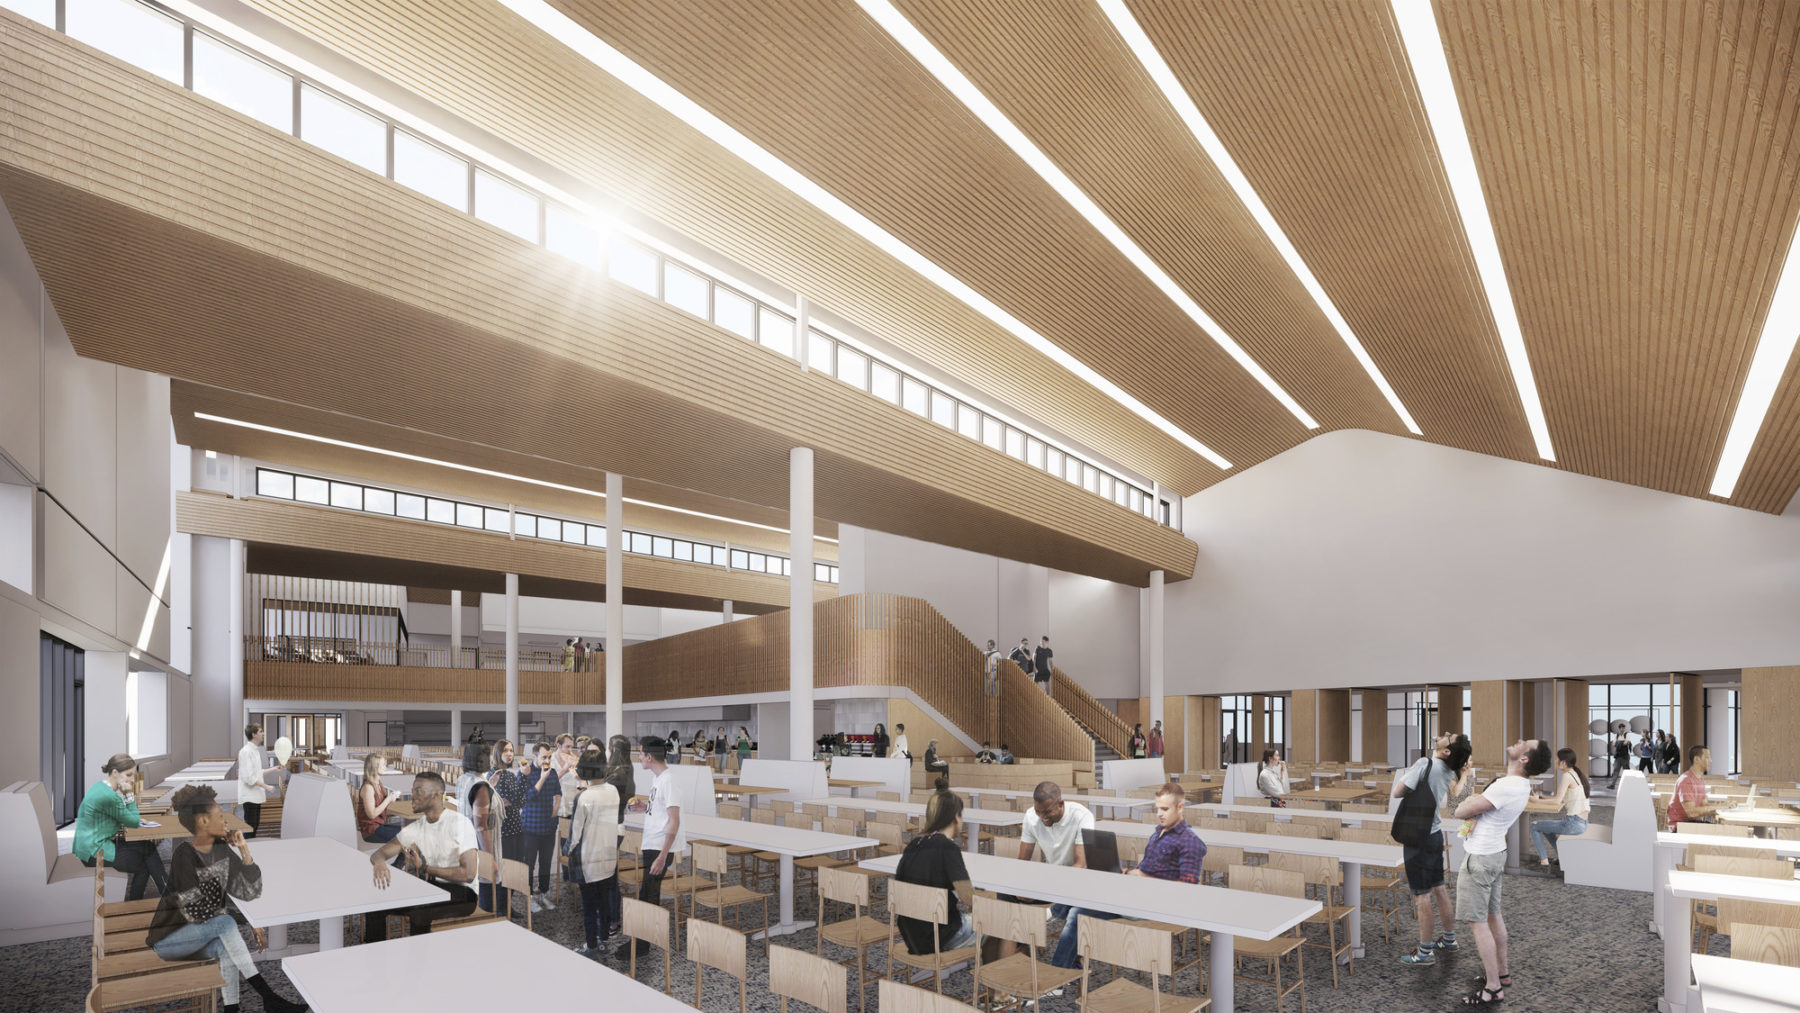 perspective rendering view of dining hall interior, wood ceiling with light streaming in